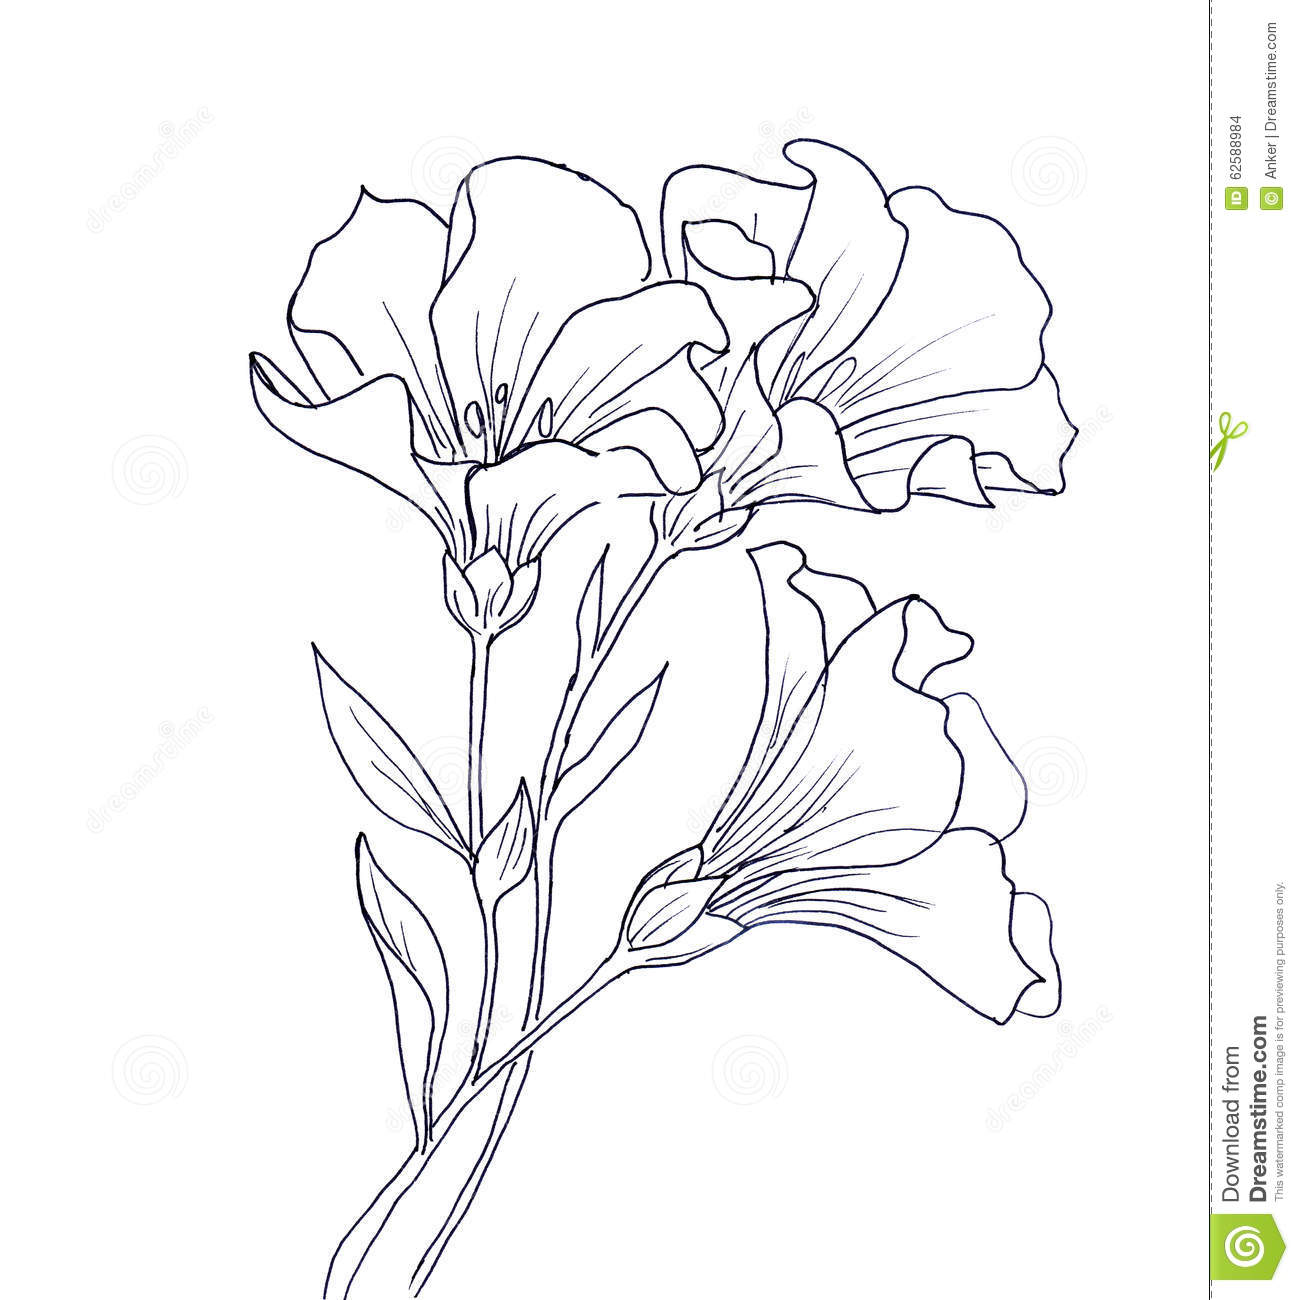 Black Line Flower Drawing : Line ink drawing of flower stock illustration